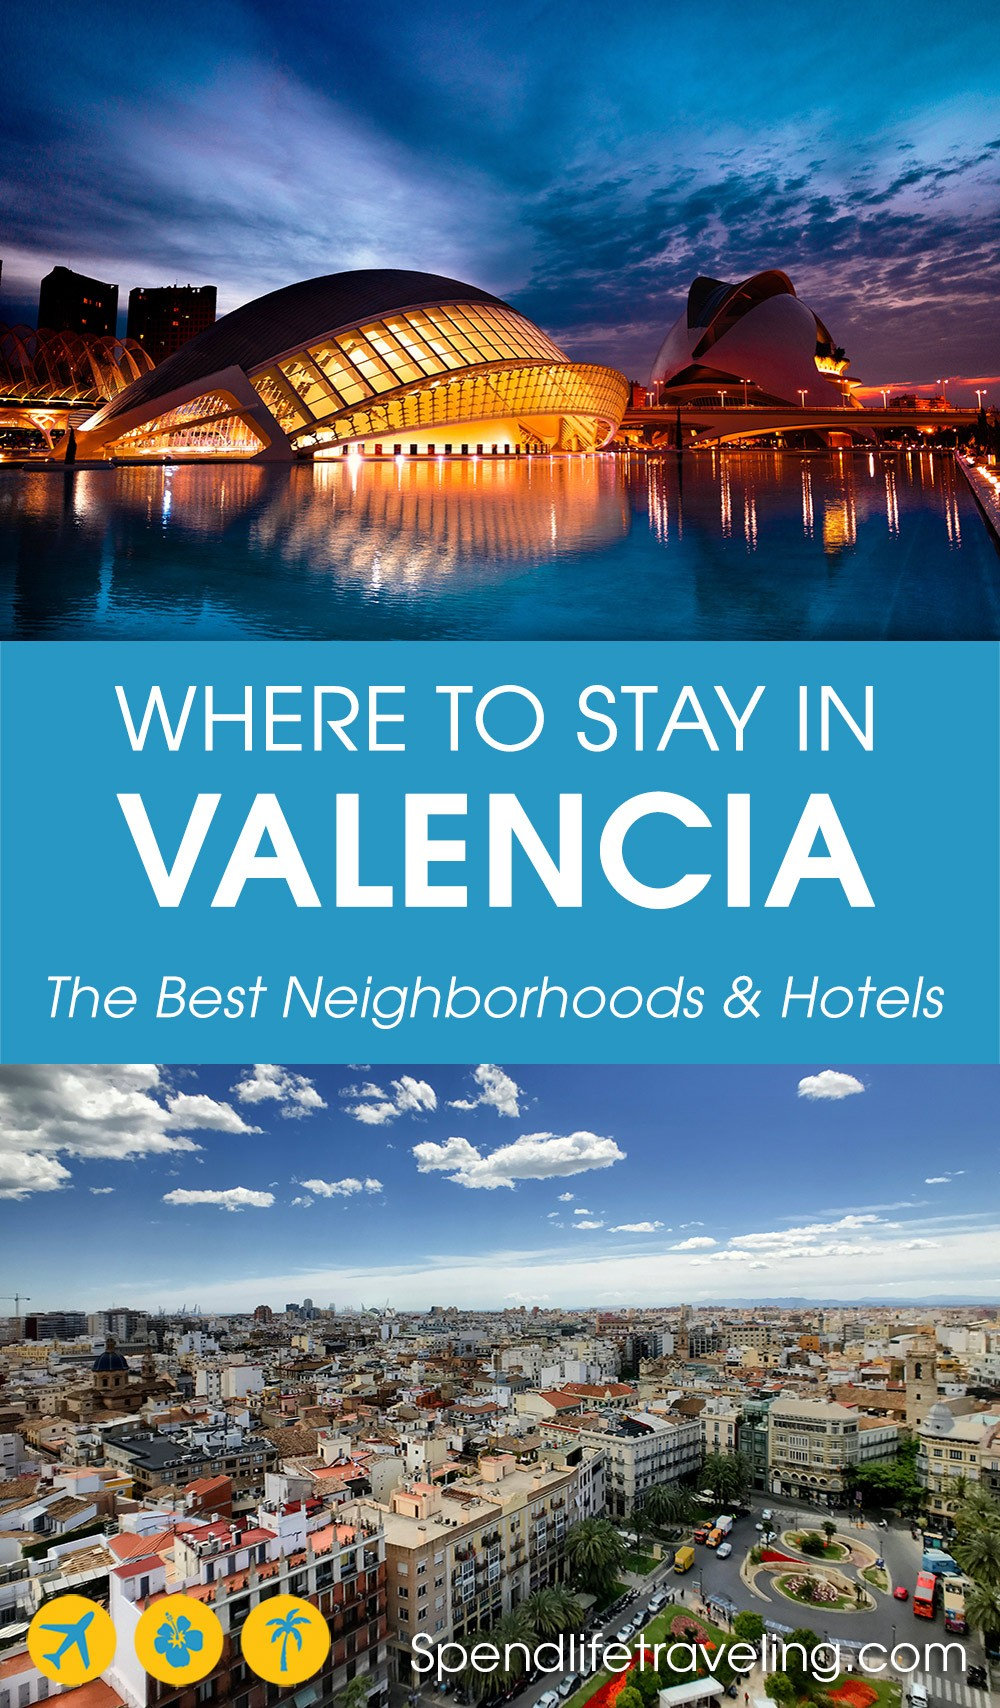 a practical guide for where to stay in Valencia, Spain